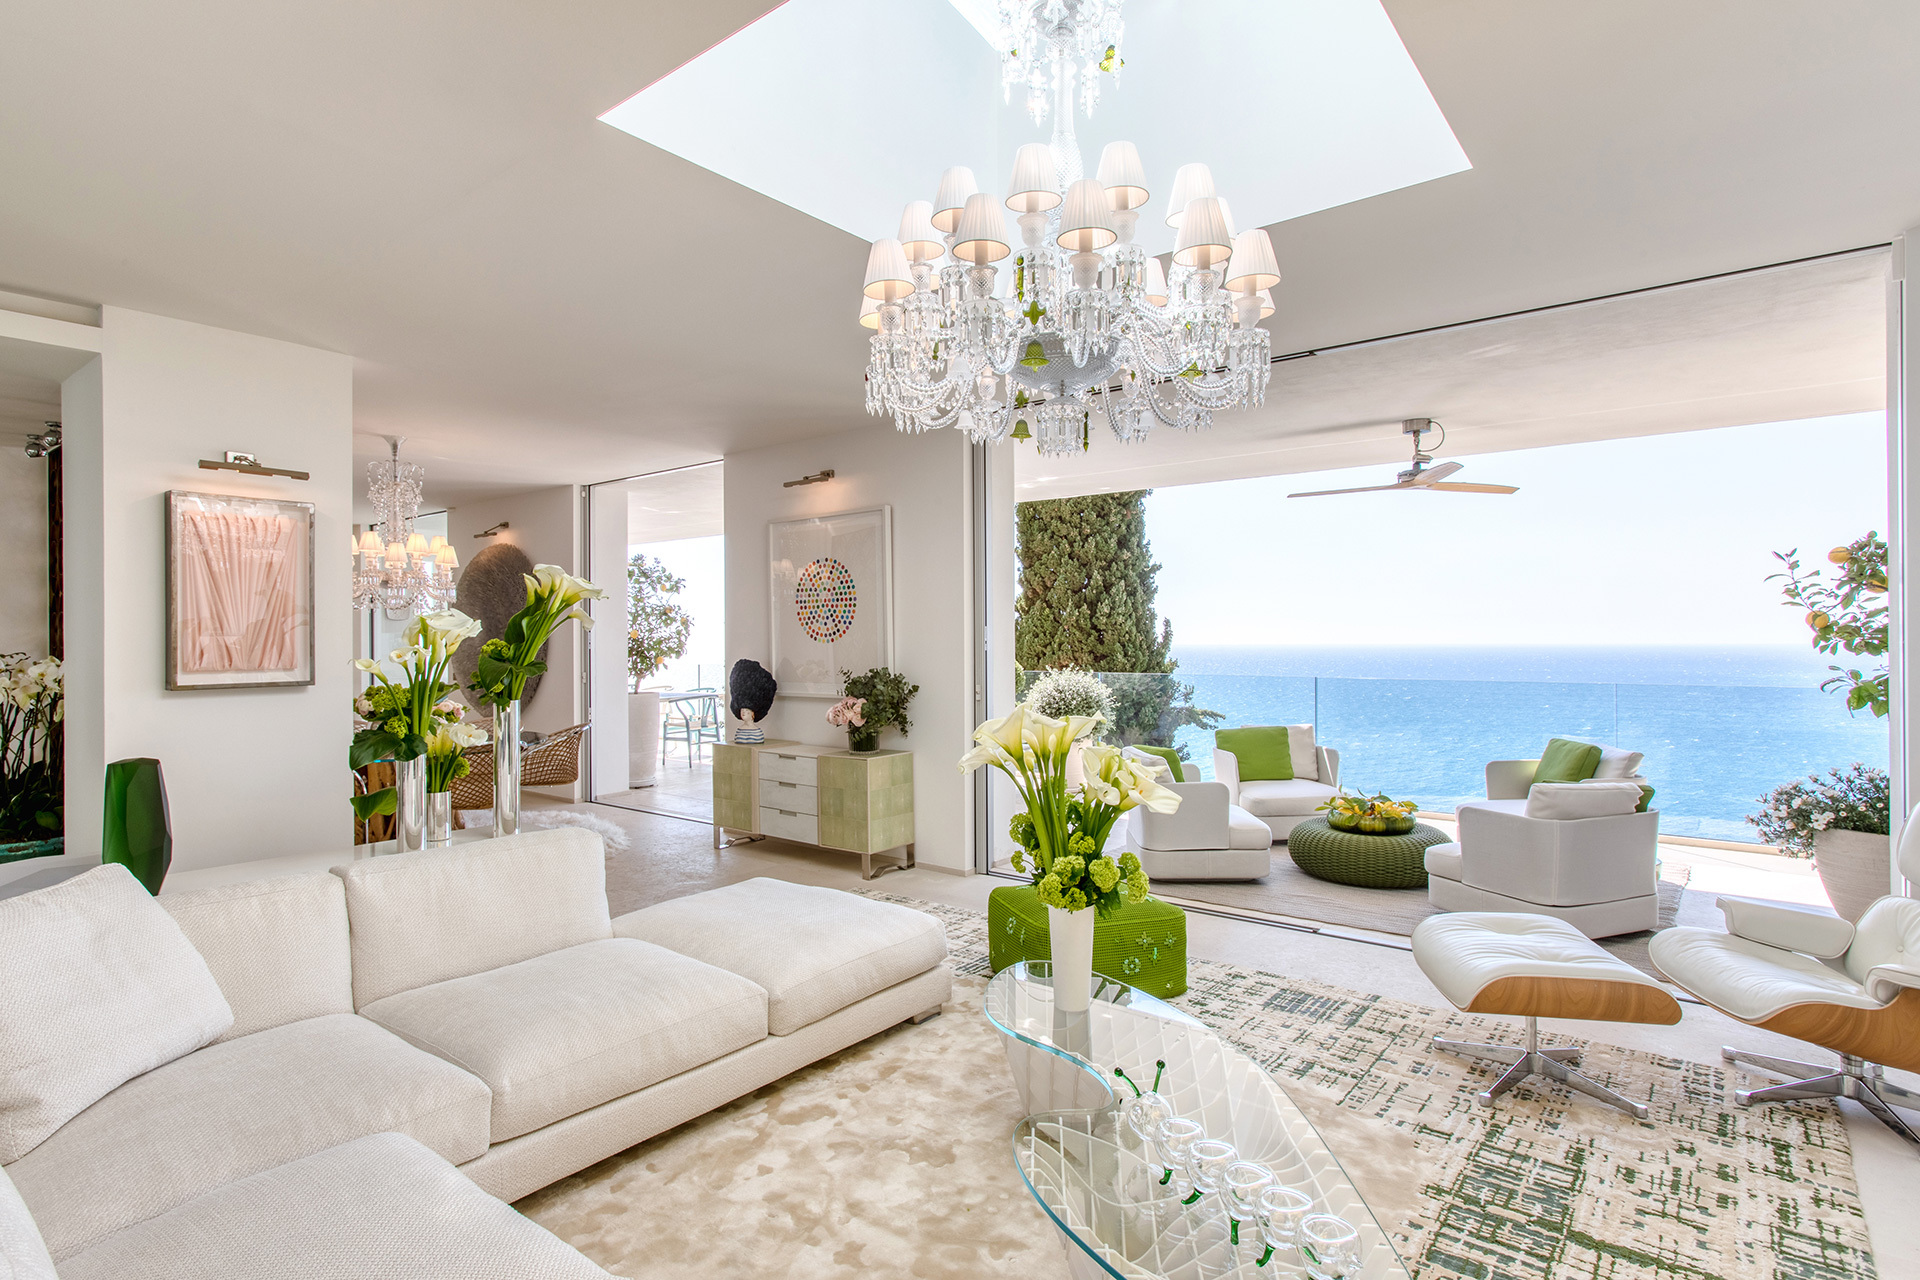 Picture windows, framing the stunning blue water beyond, are an important style element in this home | Villa Riviera | Sabrina Monteleone-Oeino | STIR